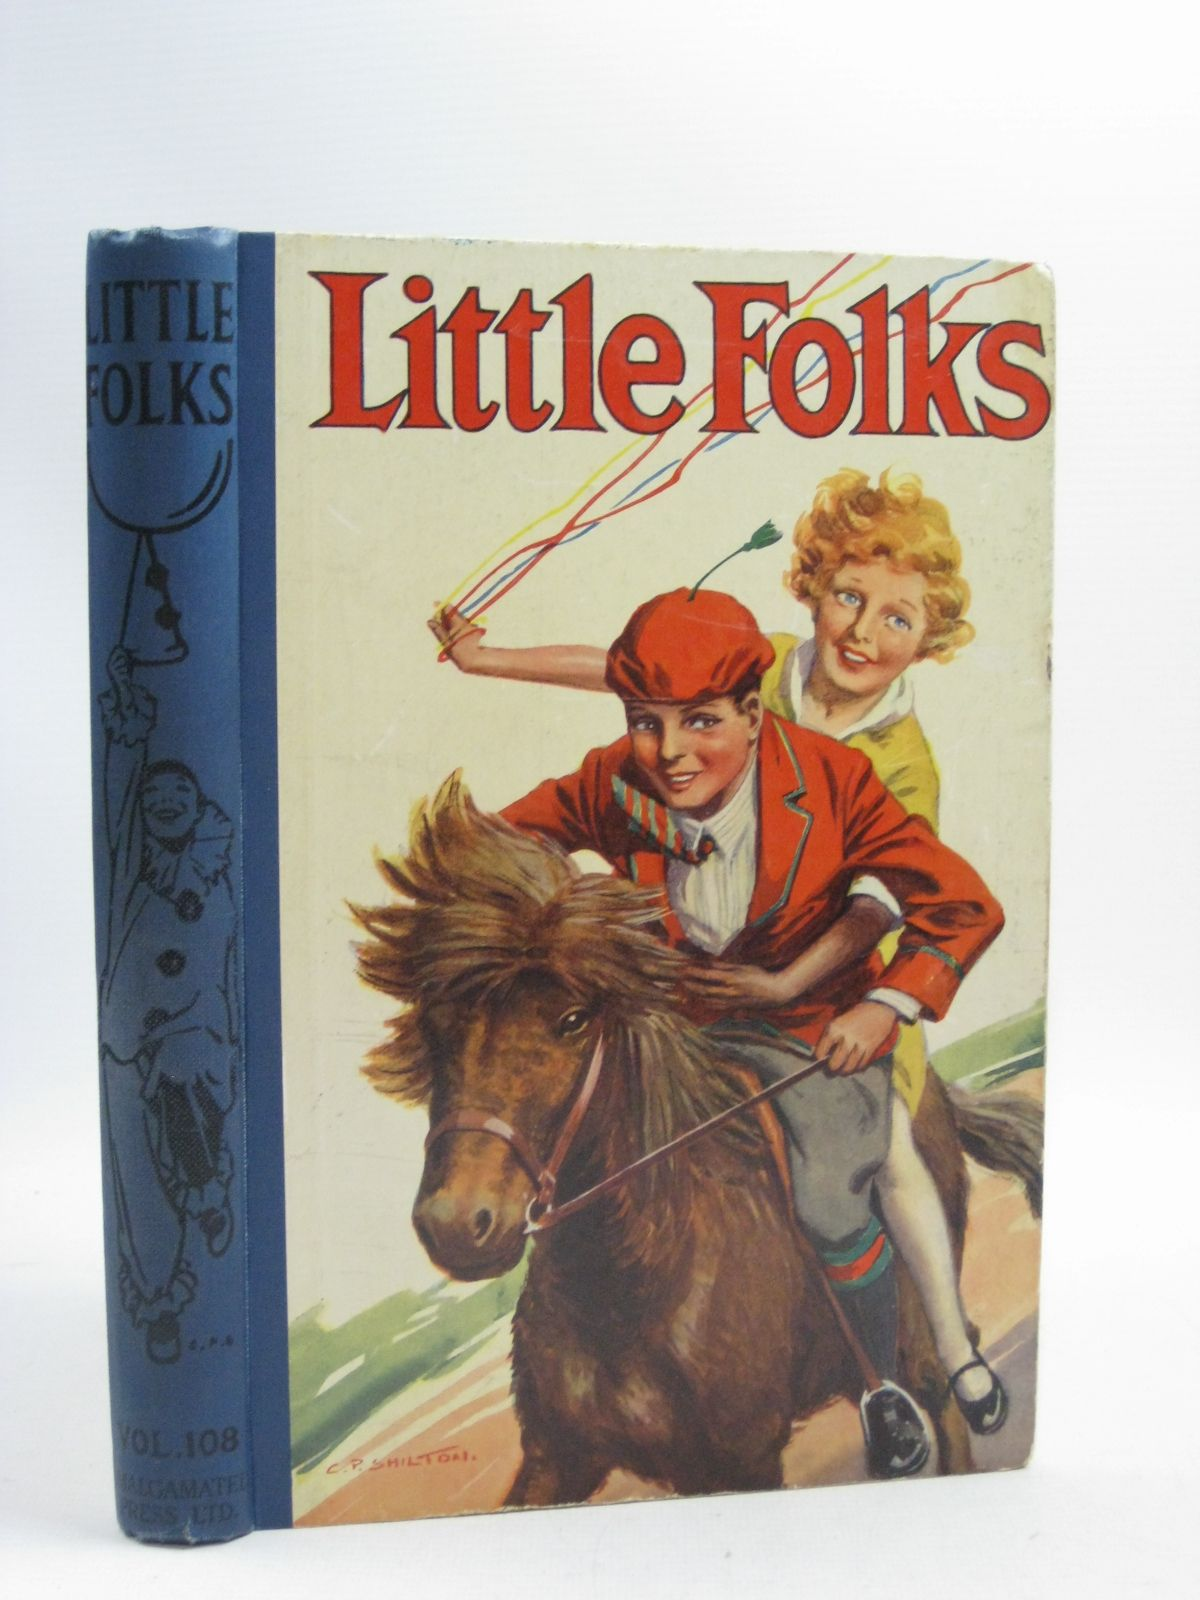 Photo of LITTLE FOLKS 1928 written by Parry, D.H. Chaundler, Christine Hayes, Nancy M. Talbot, Ethel Oxenham, Elsie J. et al, illustrated by Brock, C.E. Earnshaw, Elizabeth Brock, H.M. et al., published by The Amalgamated Press Limited (STOCK CODE: 1315183)  for sale by Stella & Rose's Books